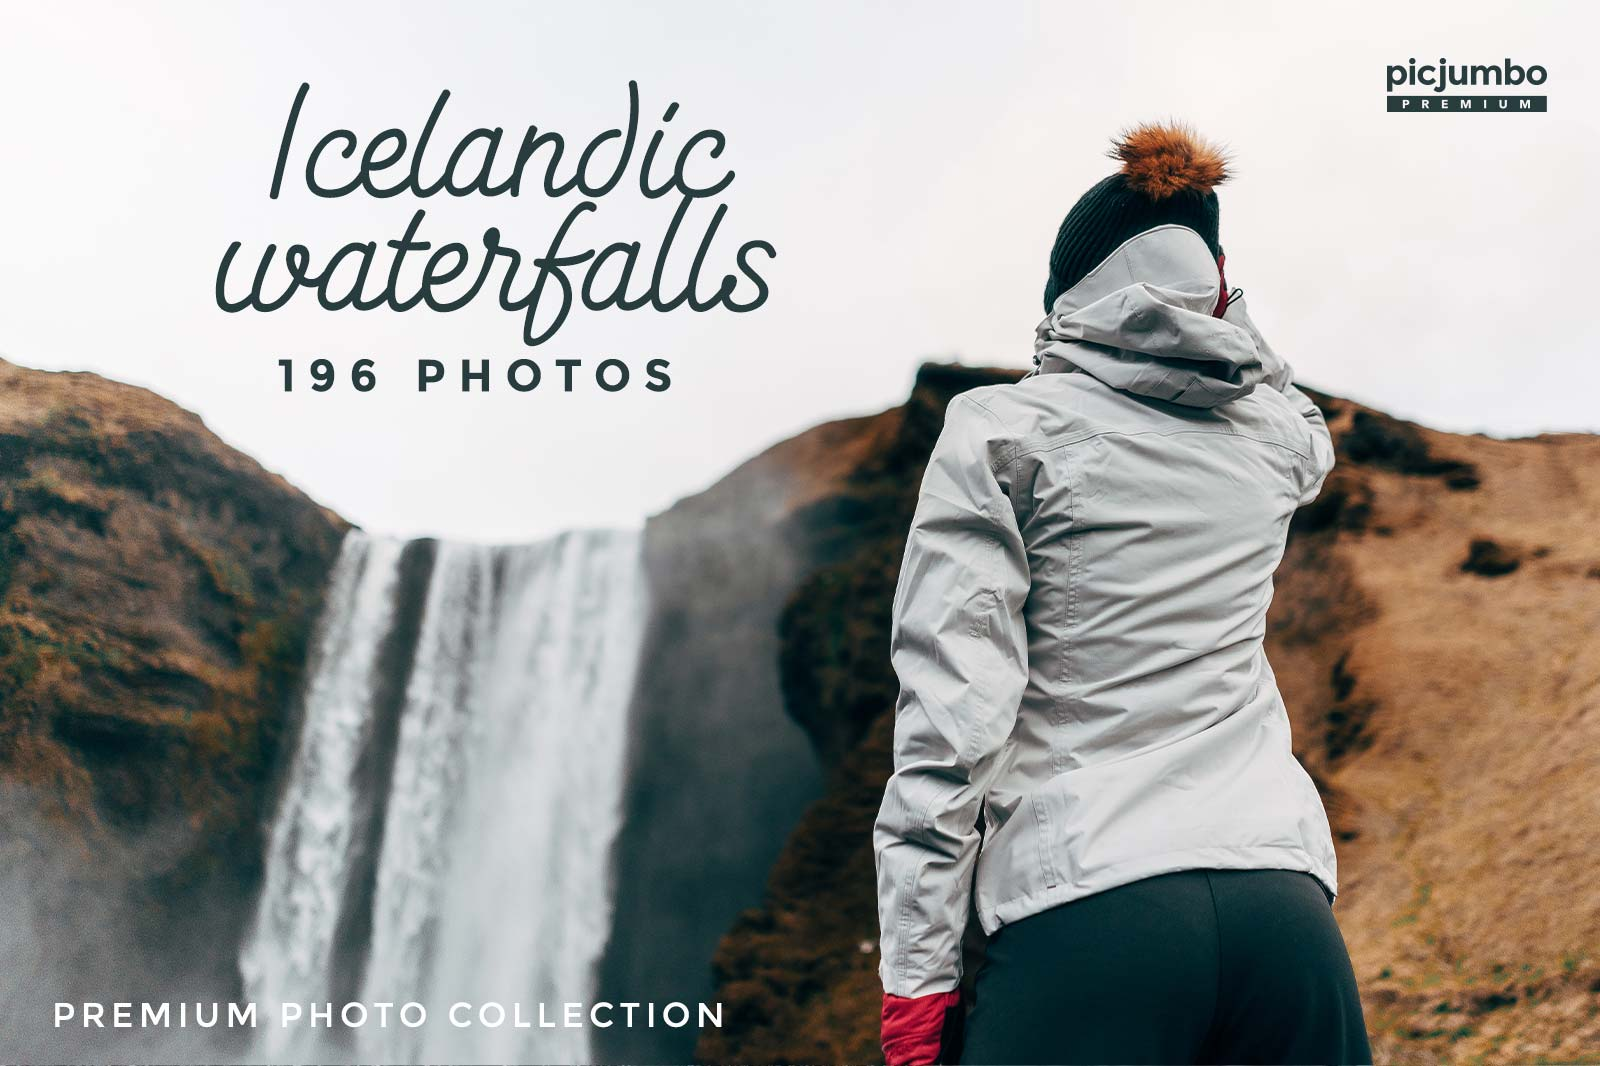 icelandic-waterfalls-stock-photos-picjumbo.jpg